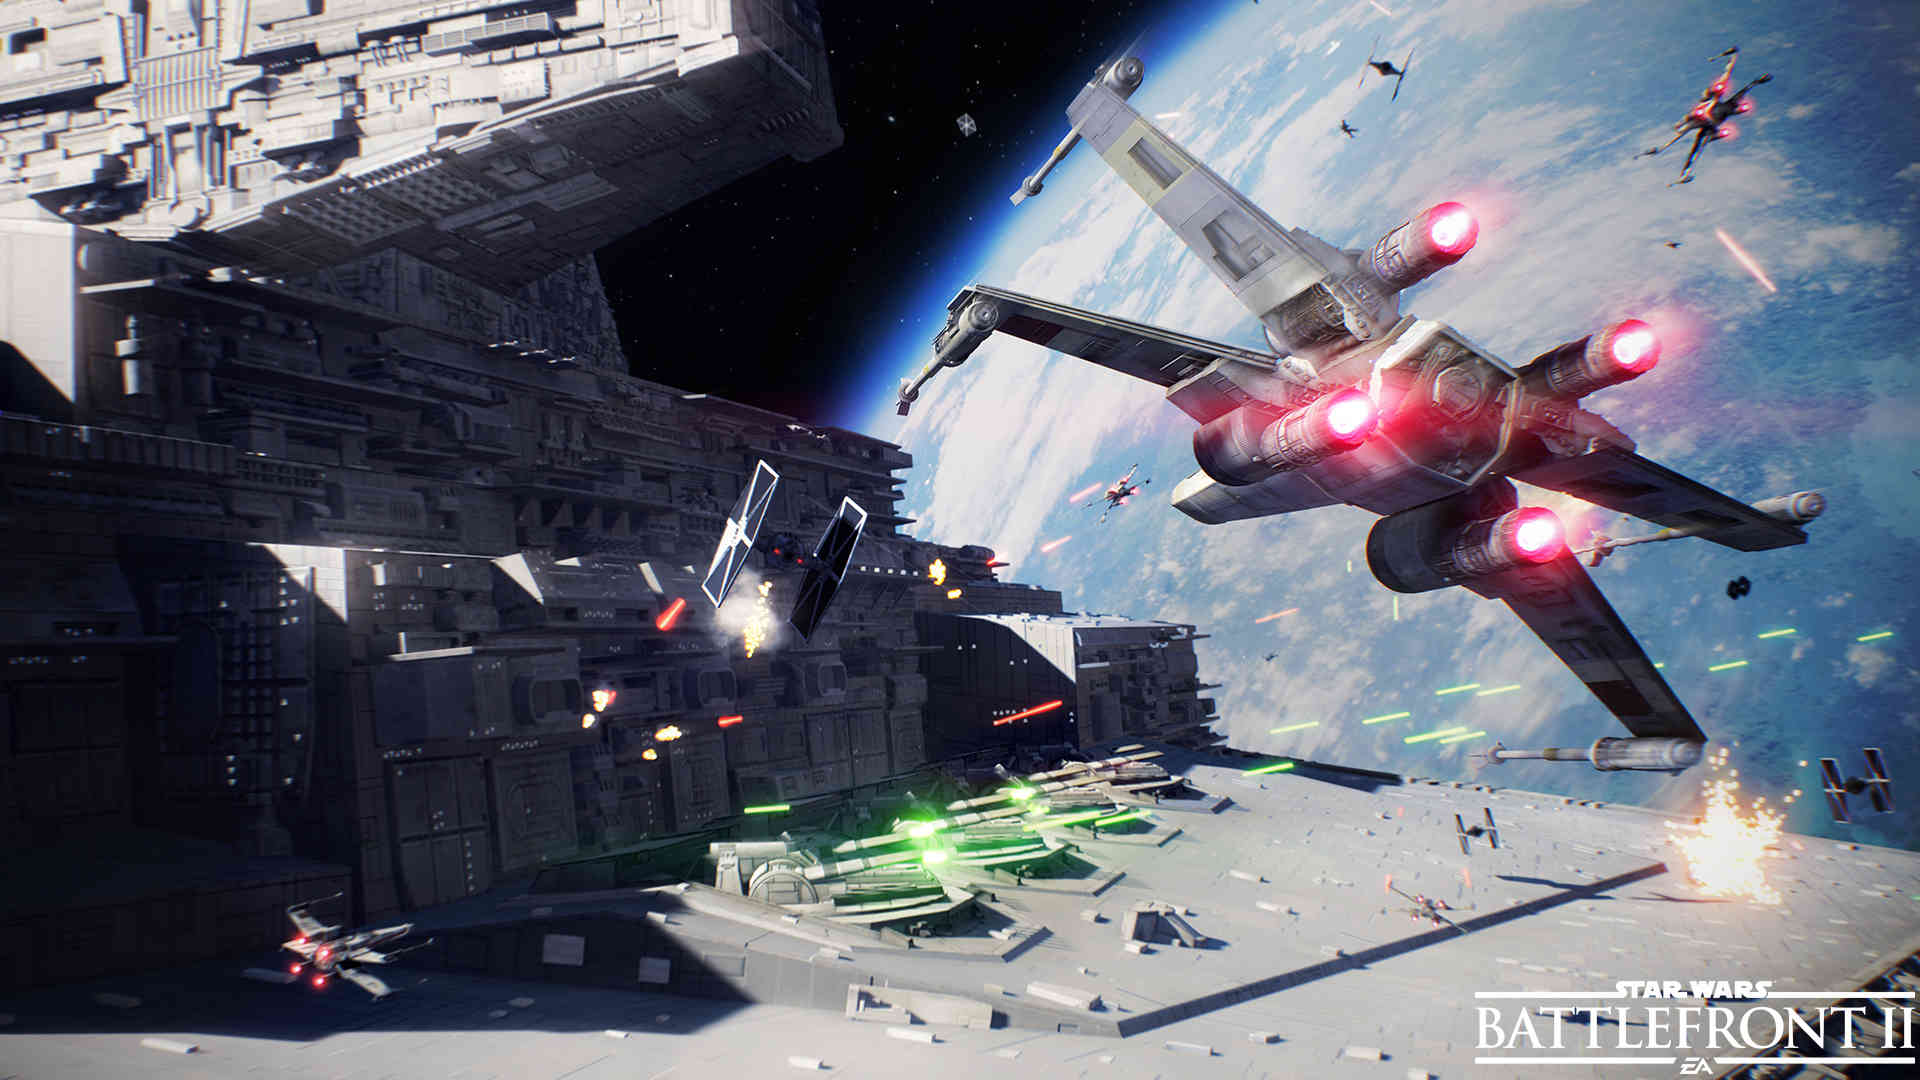 Battlefront 2 Update Brings New Ship, Maps & Fixes